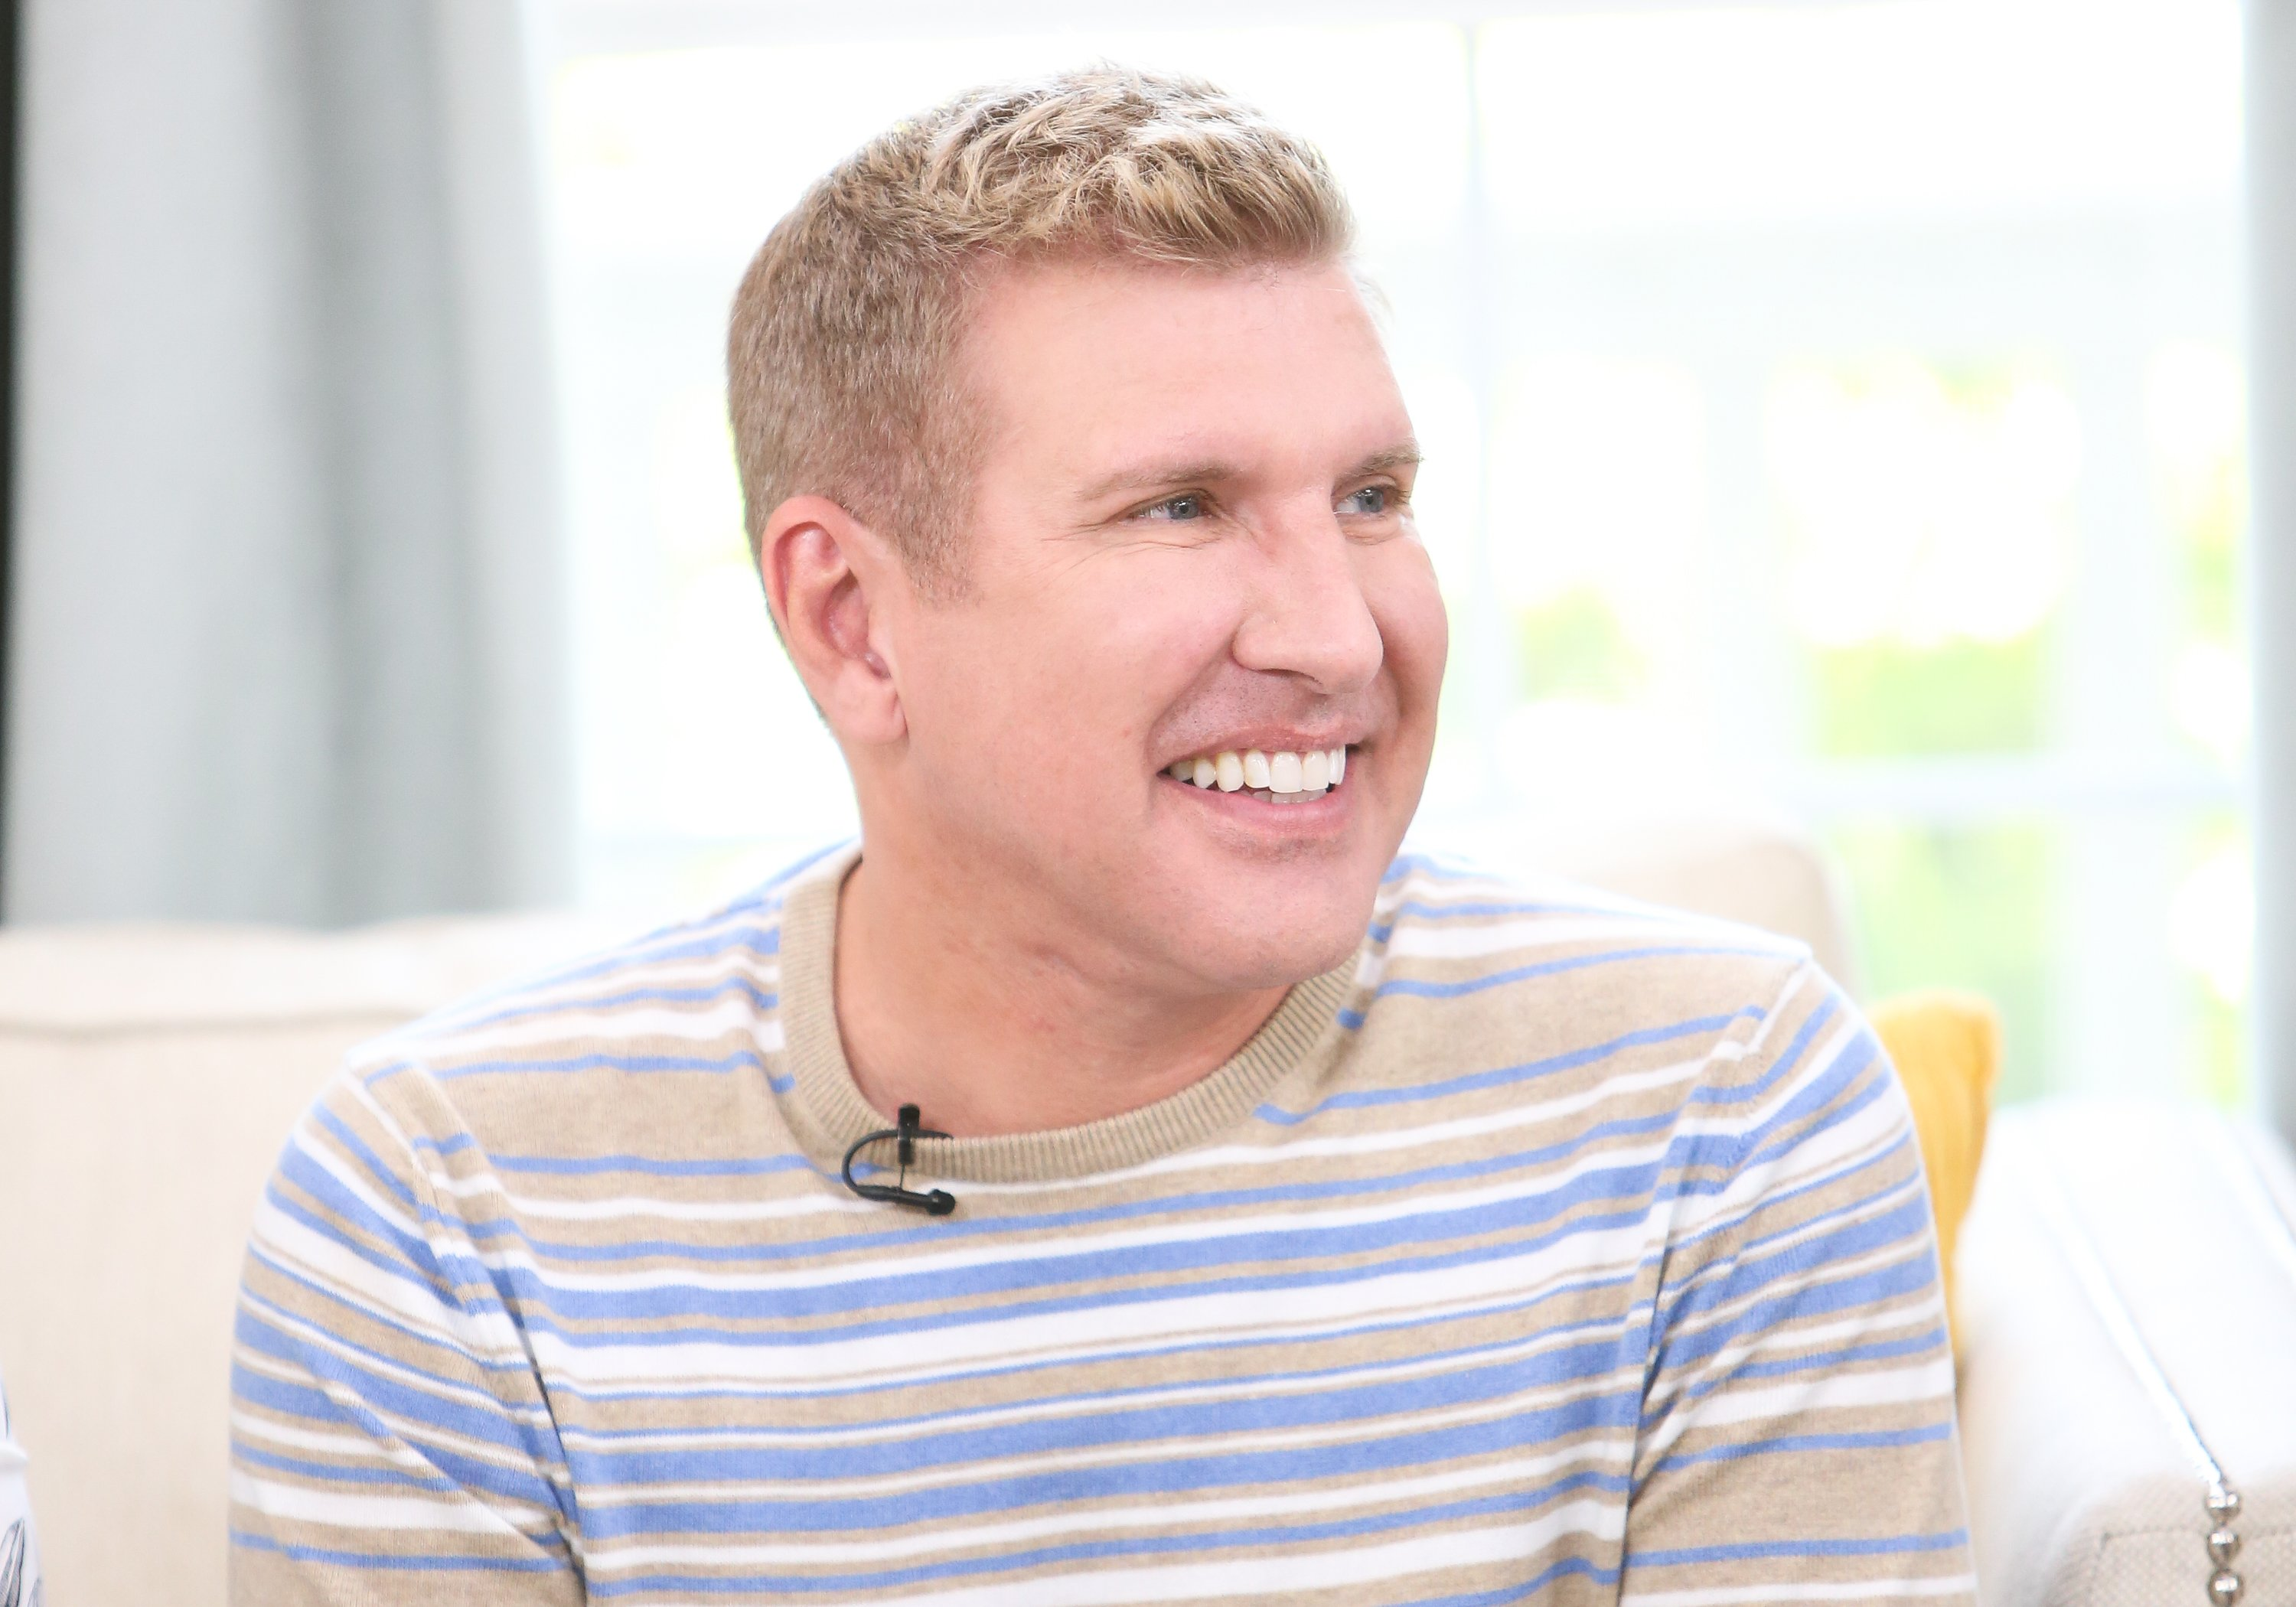 Todd Chrisley at Universal Studios Hollywood on June 18, 2018 in Universal City, California. | Source: Getty Images